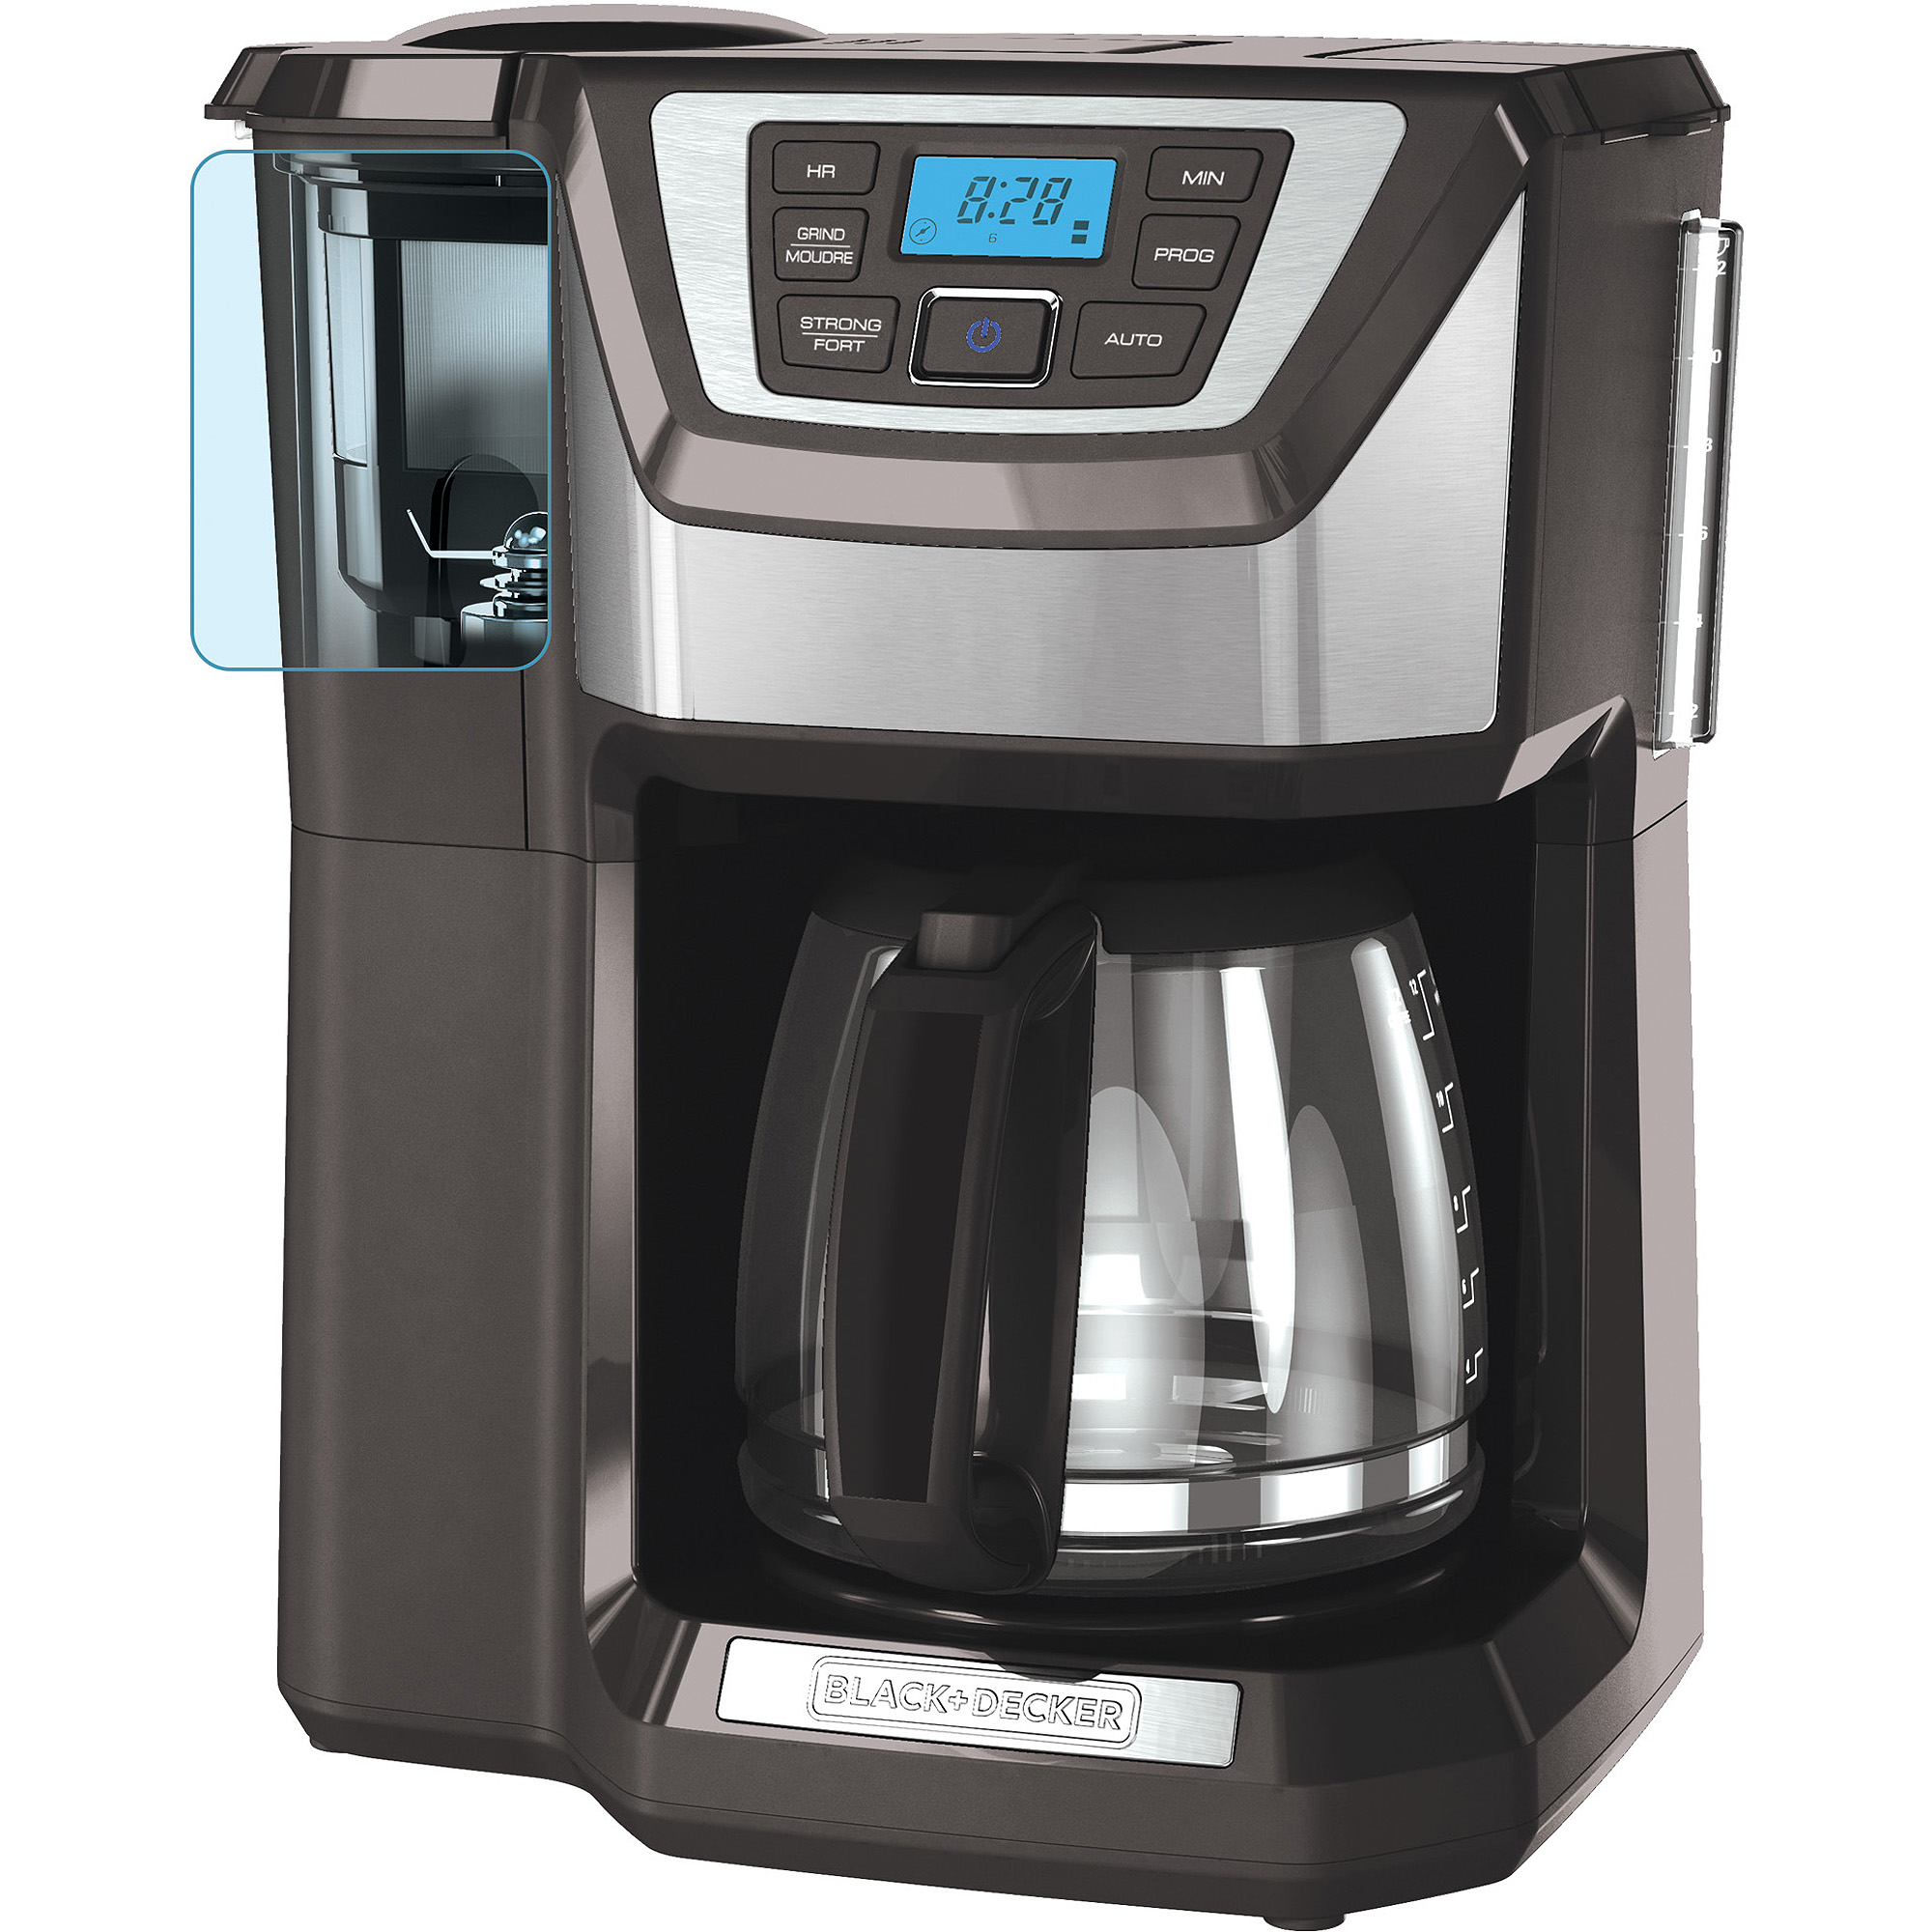 Black and decker 12 cup programmable - Black Decker Mill And Brew 12 Cup Programmable Coffee Maker With Grinder Cm5000gd Walmart Com